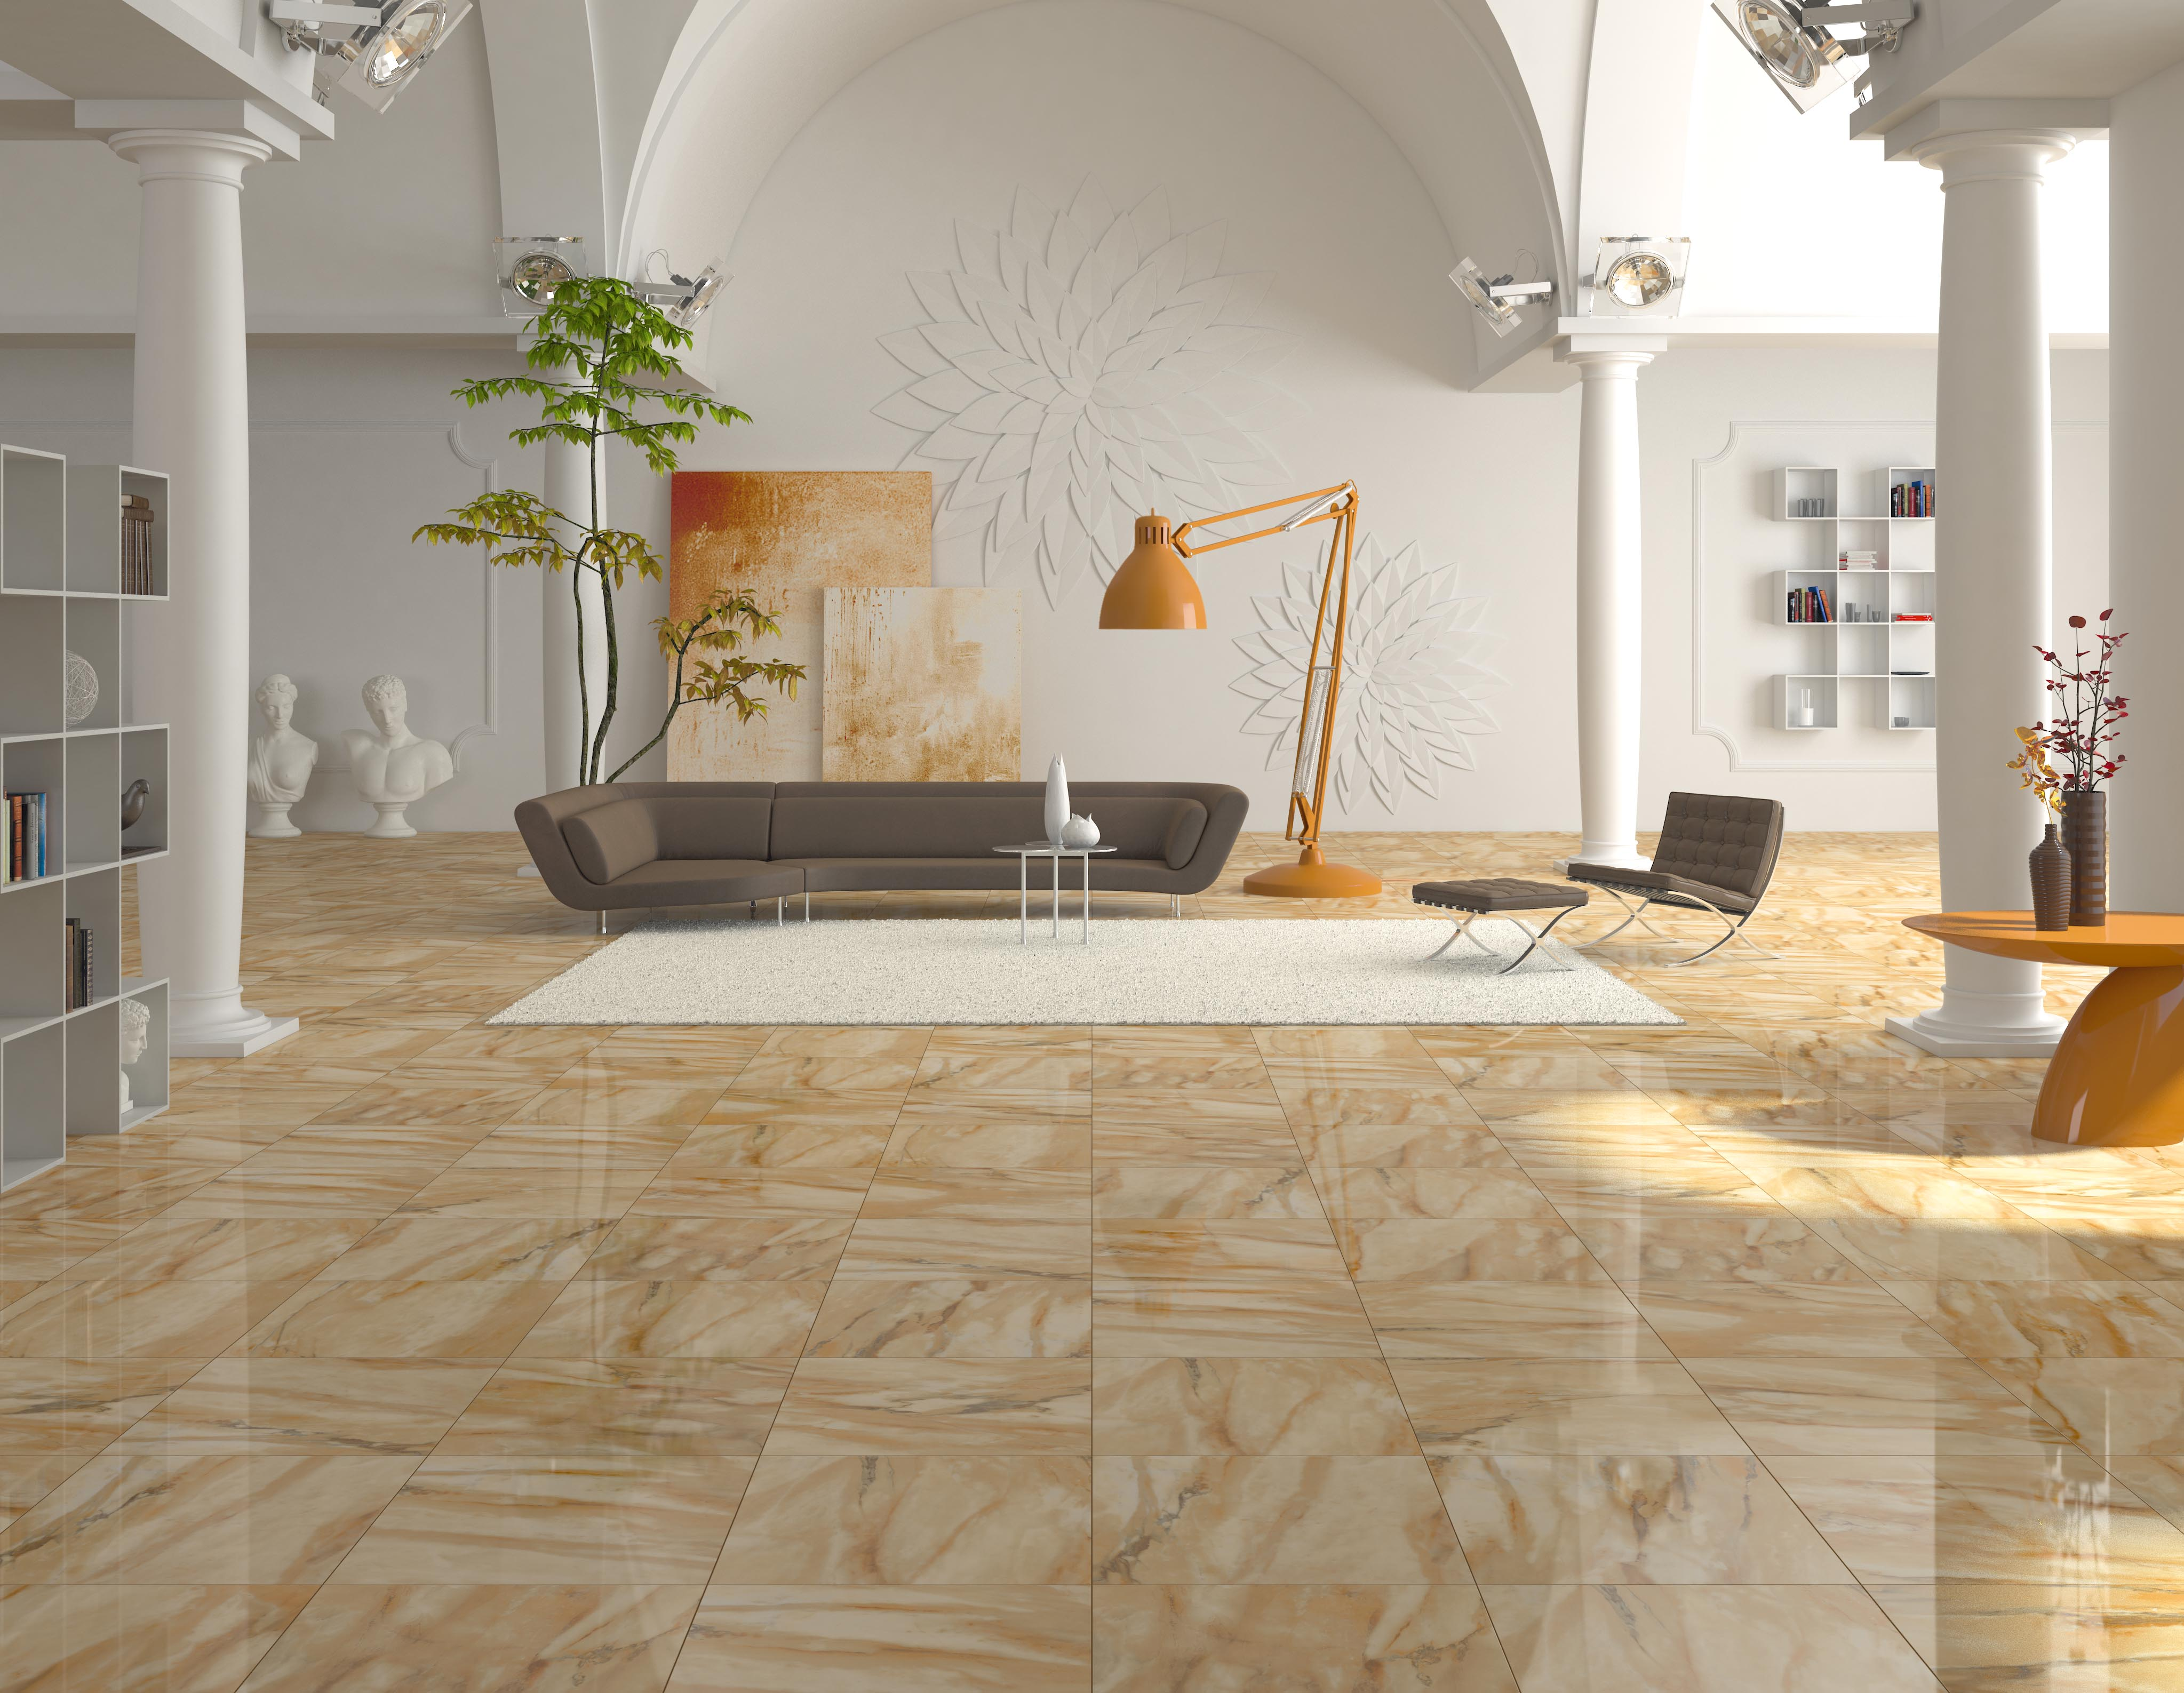 MARBLE Ceramic and Porcelain Tiles by Arcana Ceramica